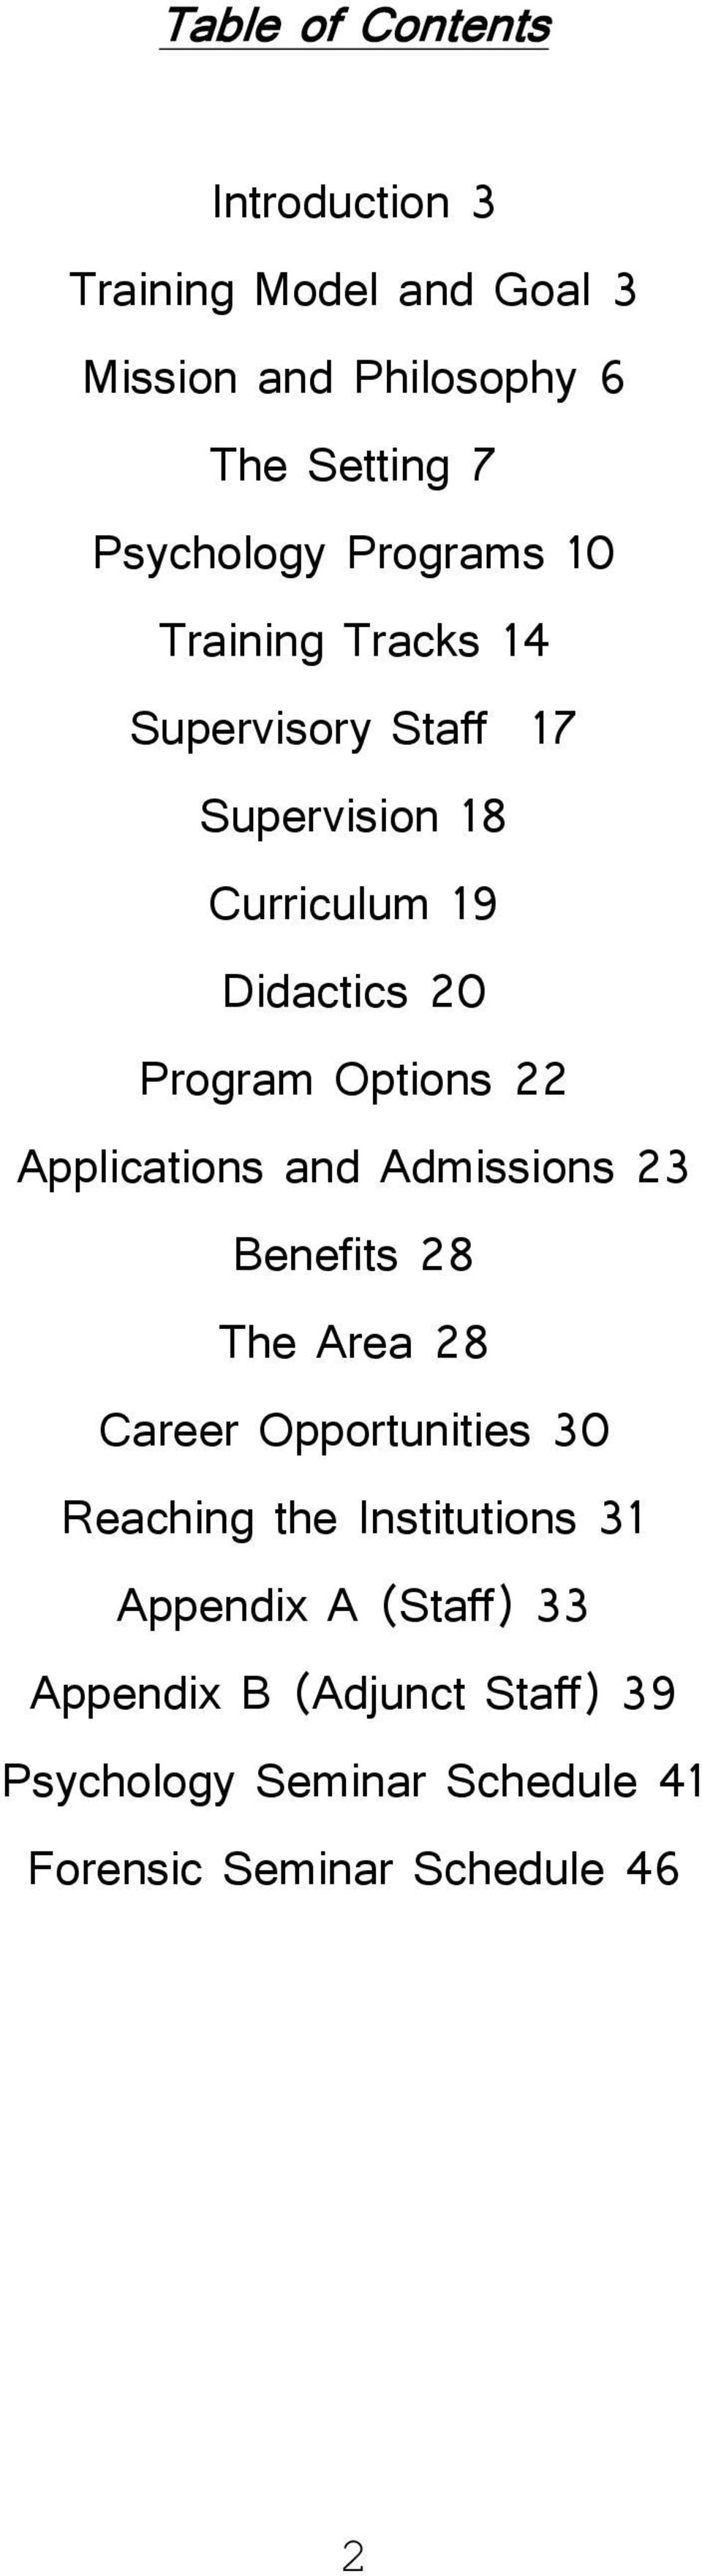 22 Applications and Admissions 23 Benefits 28 The Area 28 Career Opportunities 30 Reaching the Institutions 31